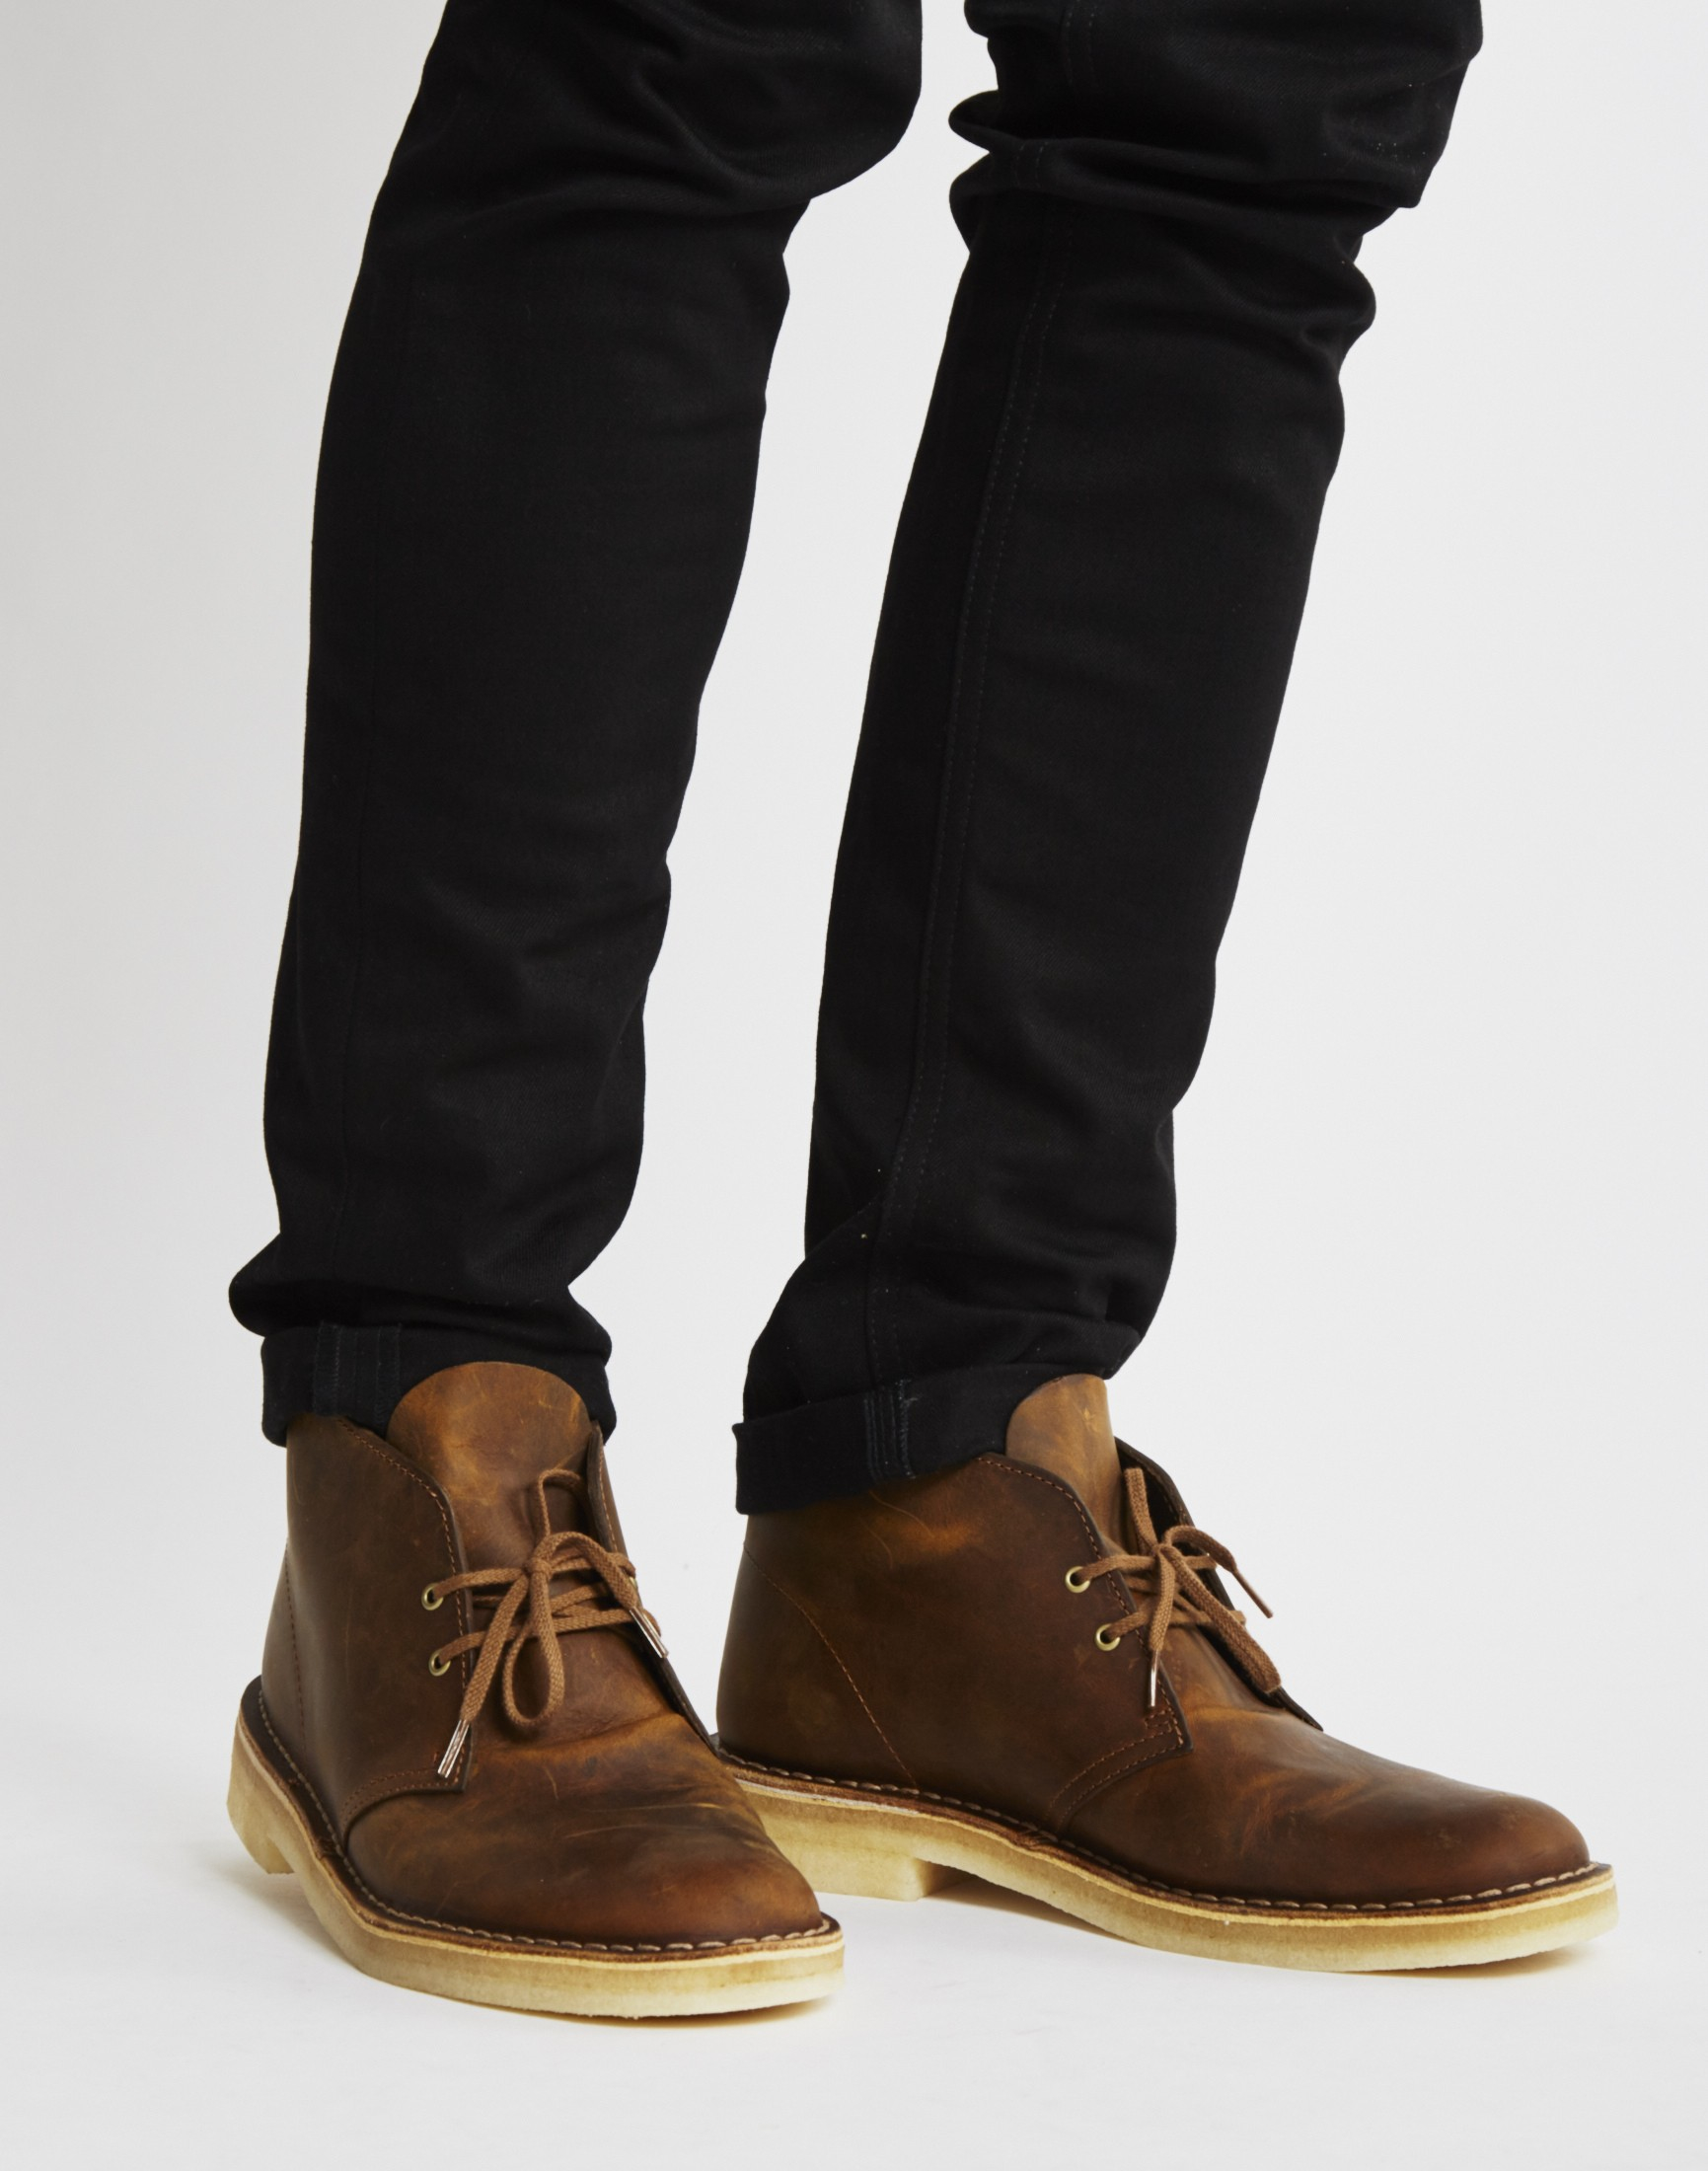 Clarks Leather Desert Boot In Brown For Men Lyst